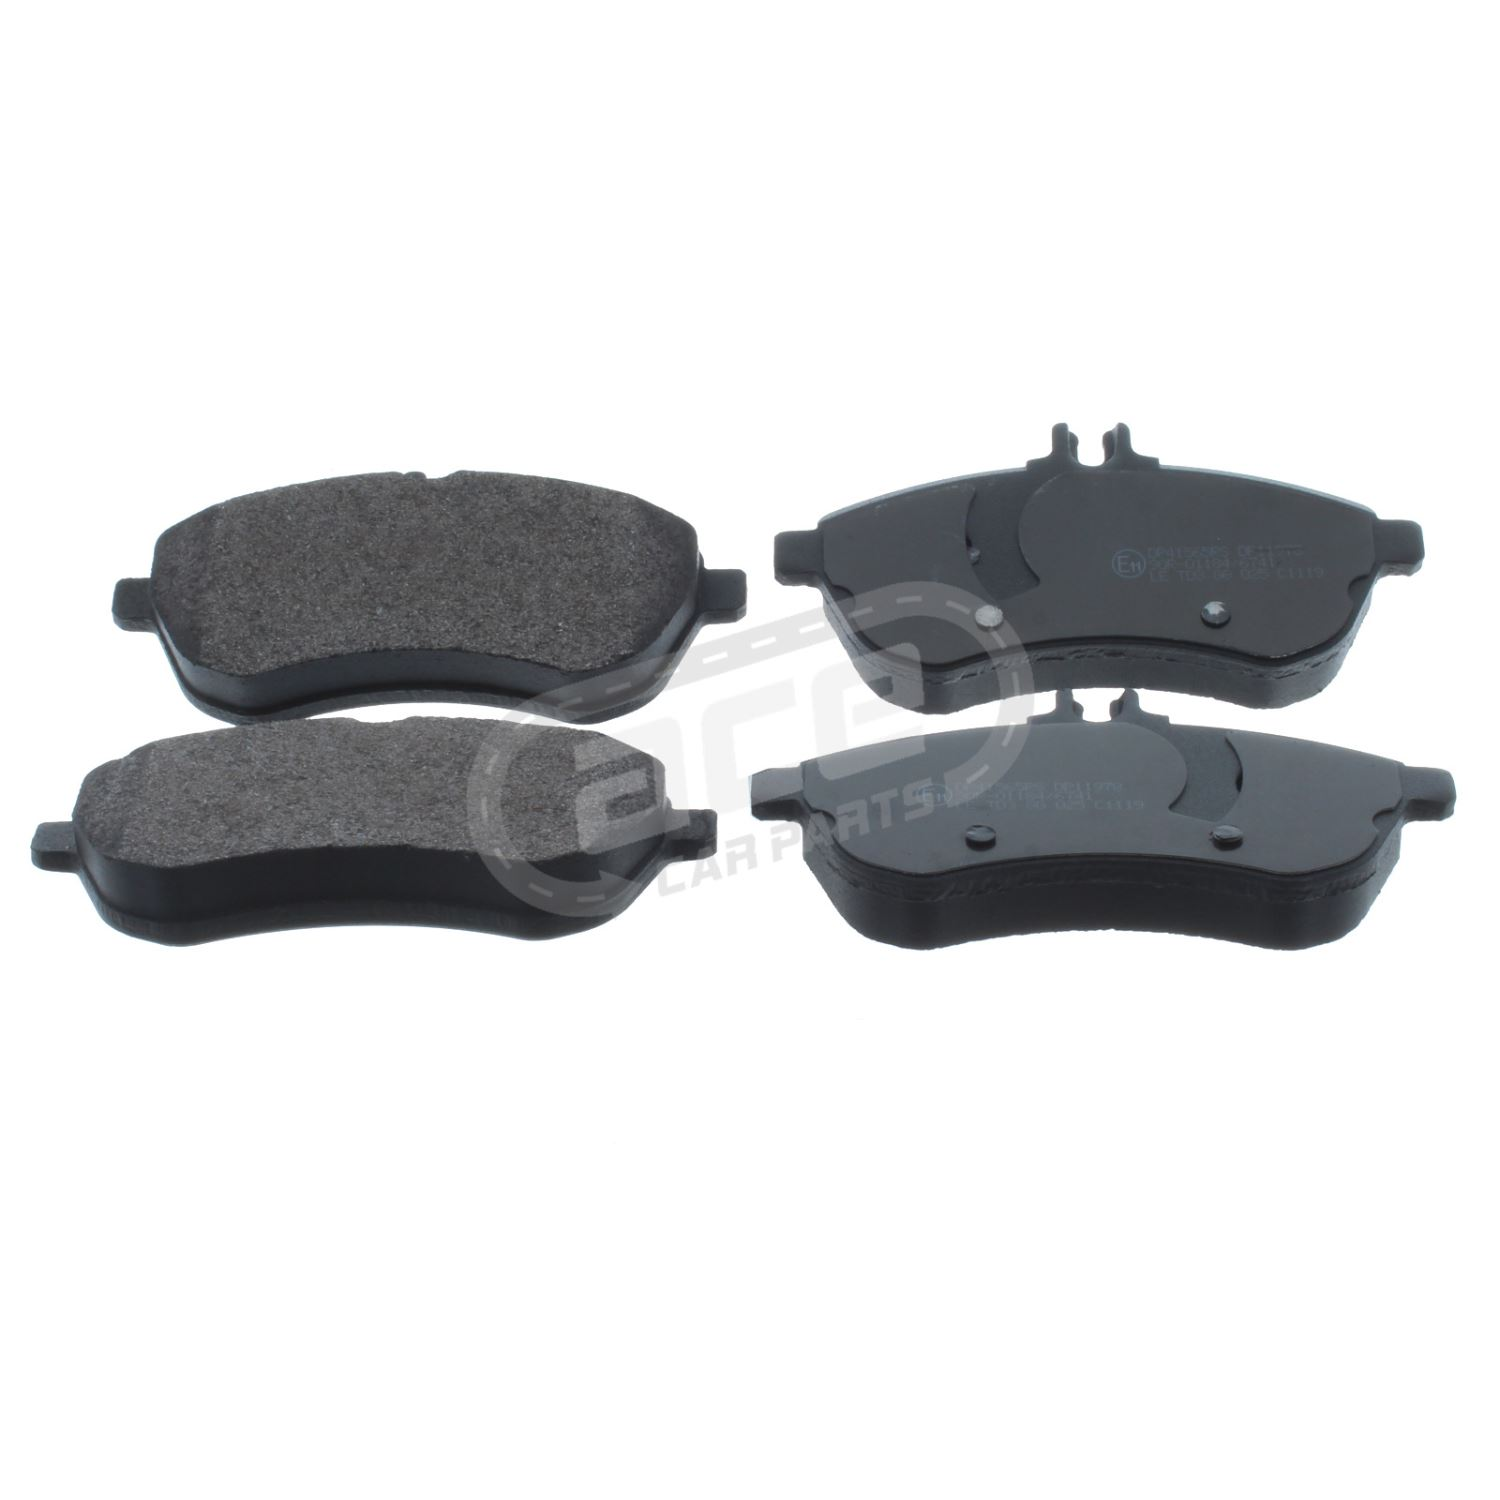 Mercedes-Benz C-Class T-Model S204 2007-2015 Brembo Front Brake Pad Set